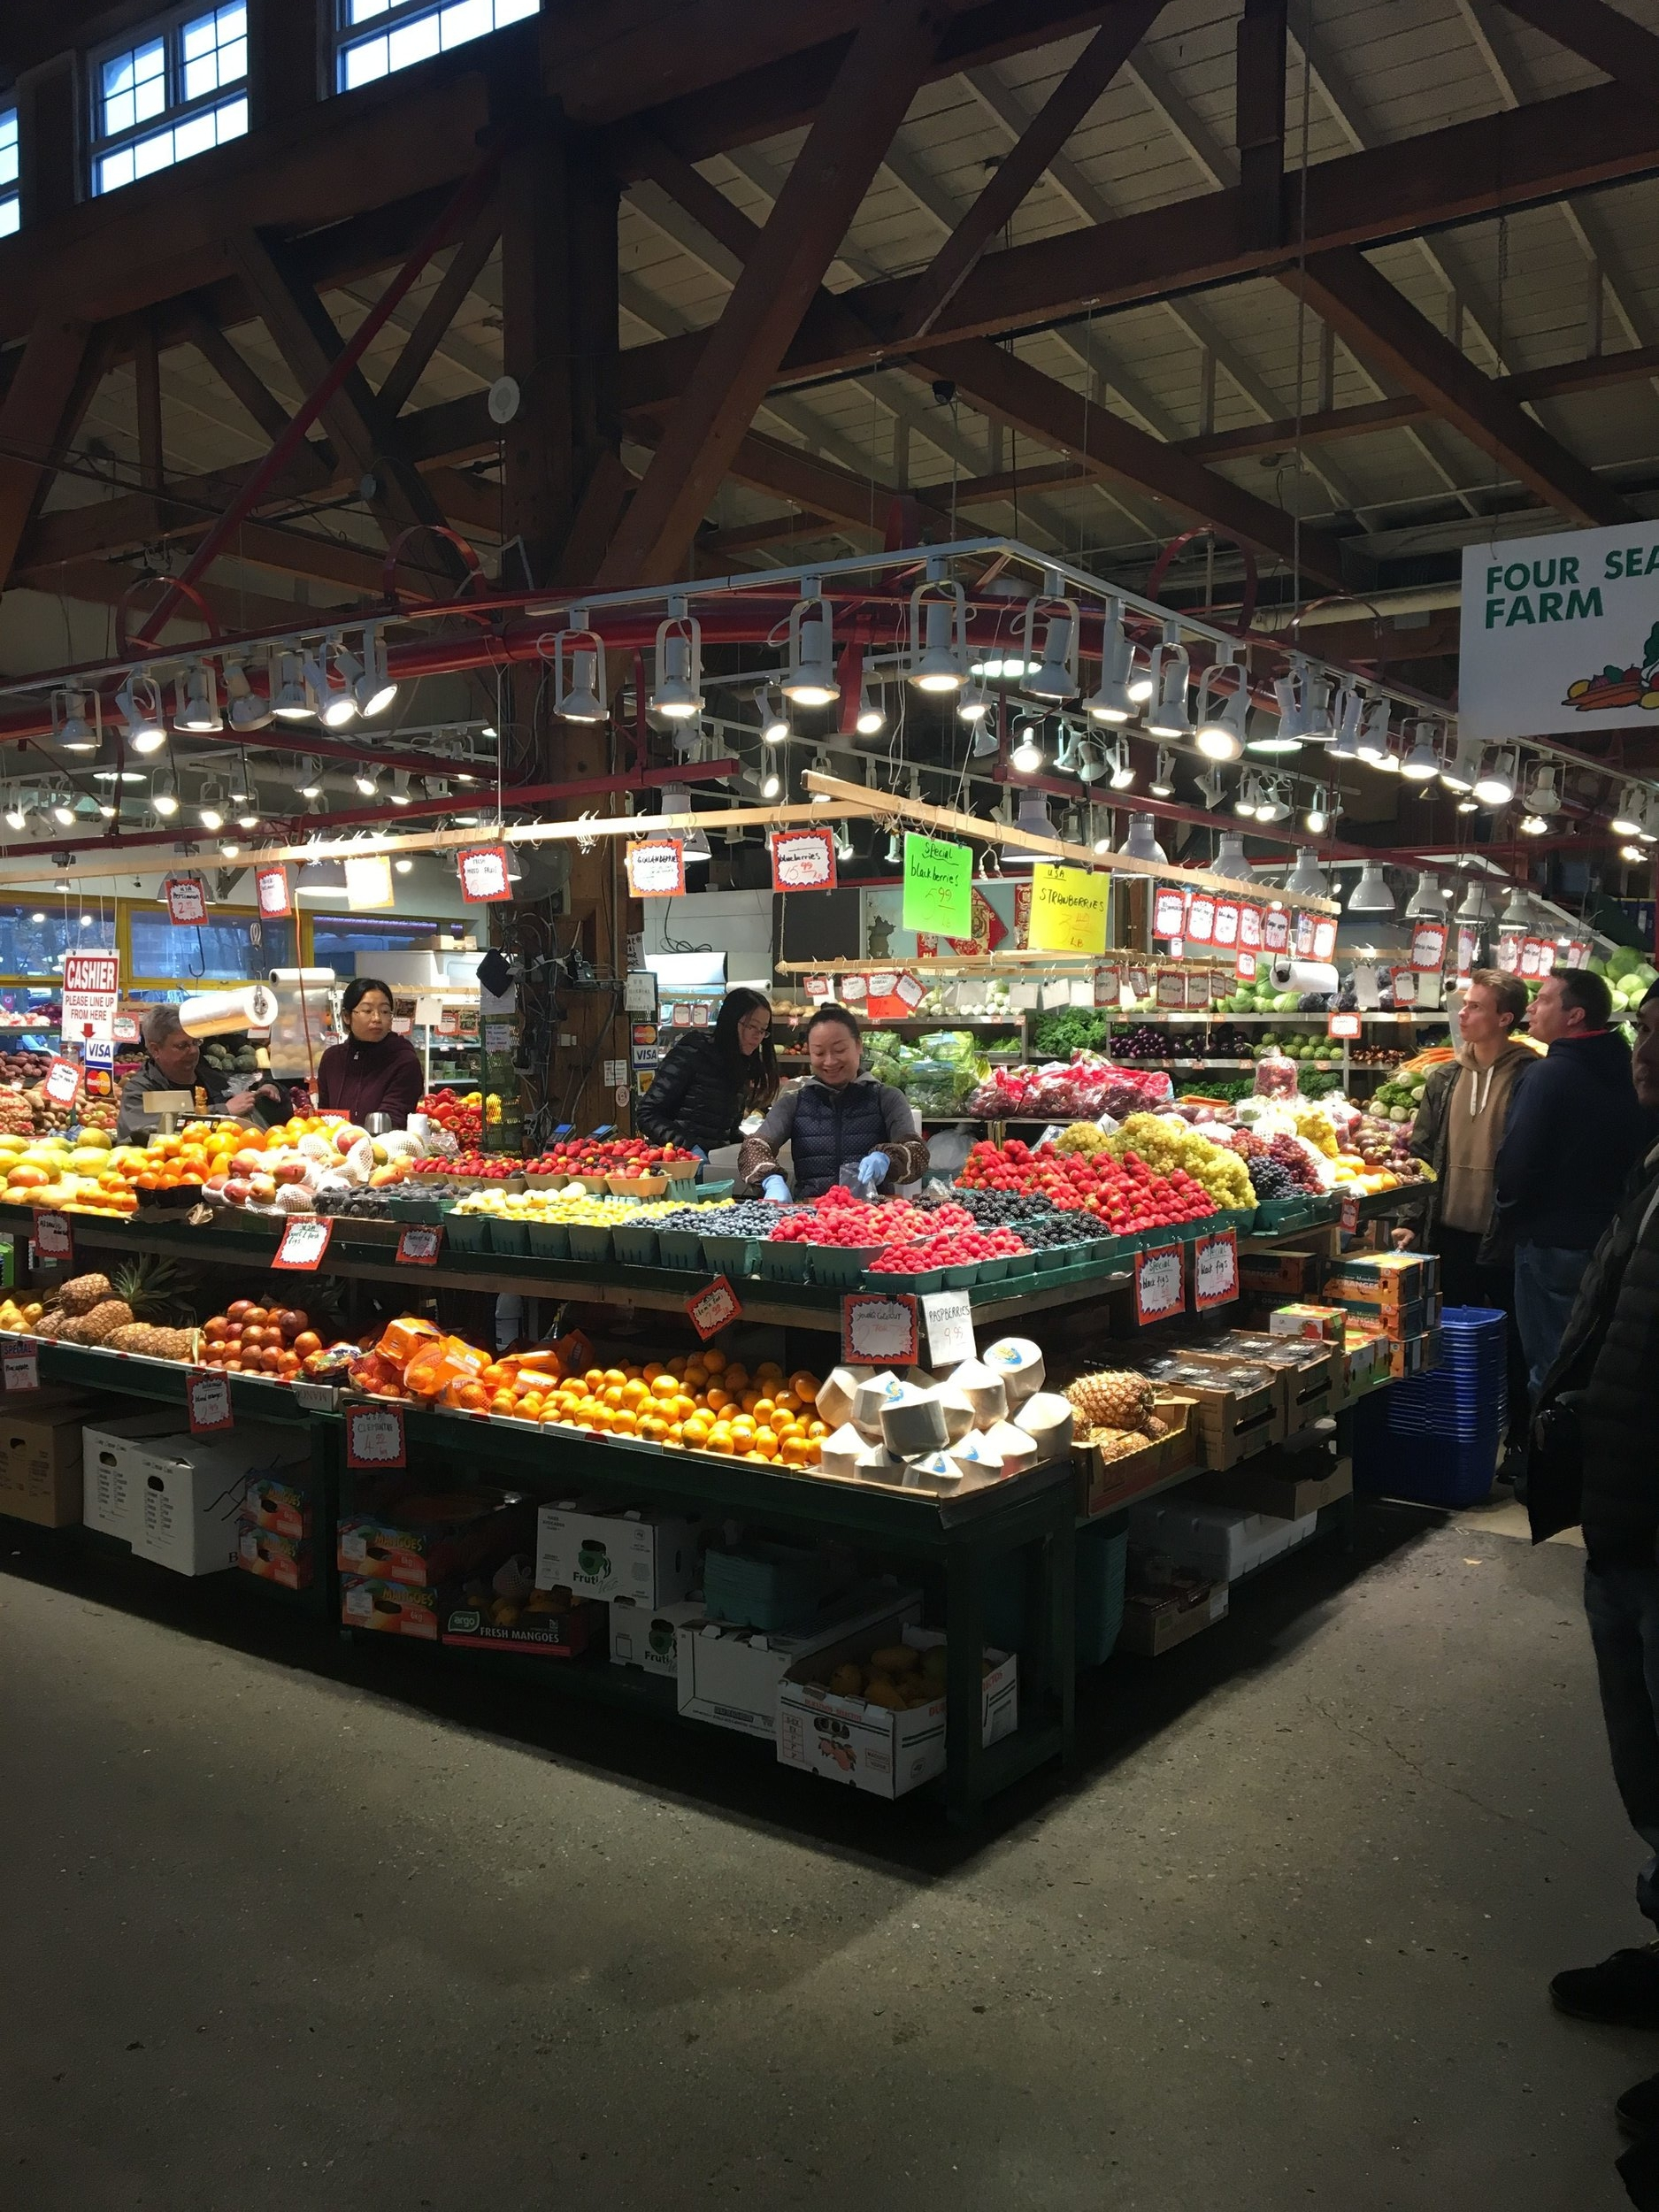 The Granville Island Public Market  is filled with stalls upon stalls of food, homemade products and all sorts of goodness. While there, it was so hard to decide what we wanted to eat! There are also plenty of little shops featuring accessories, clothing, home decor and more!